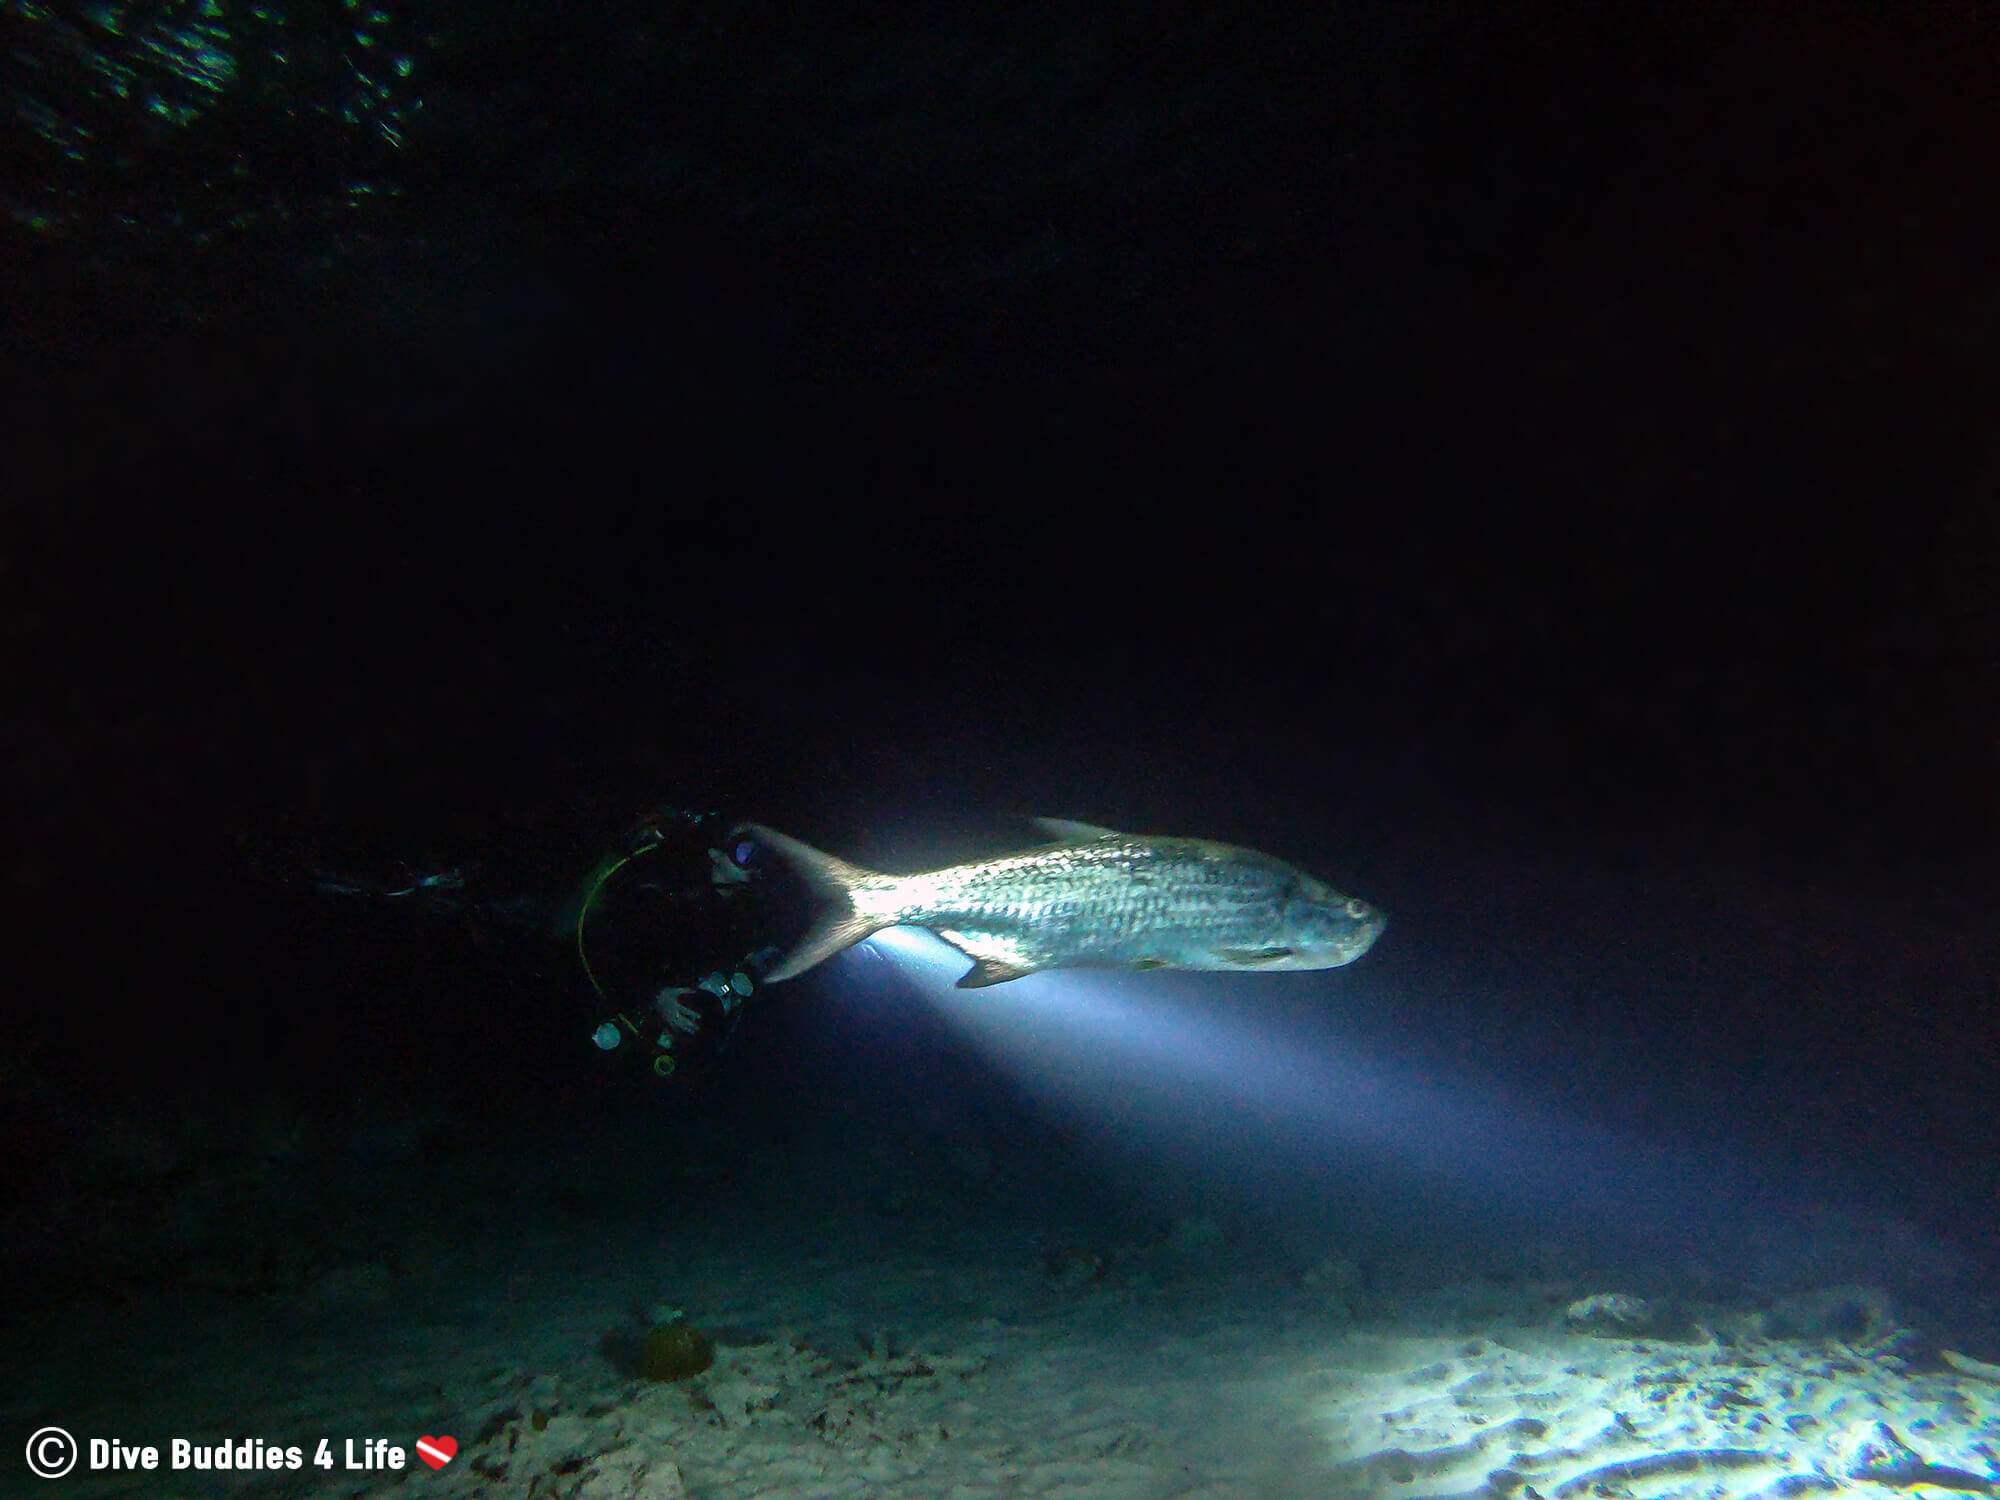 Ali Night Diving With A Tarpon In Bonaire, Caribbean